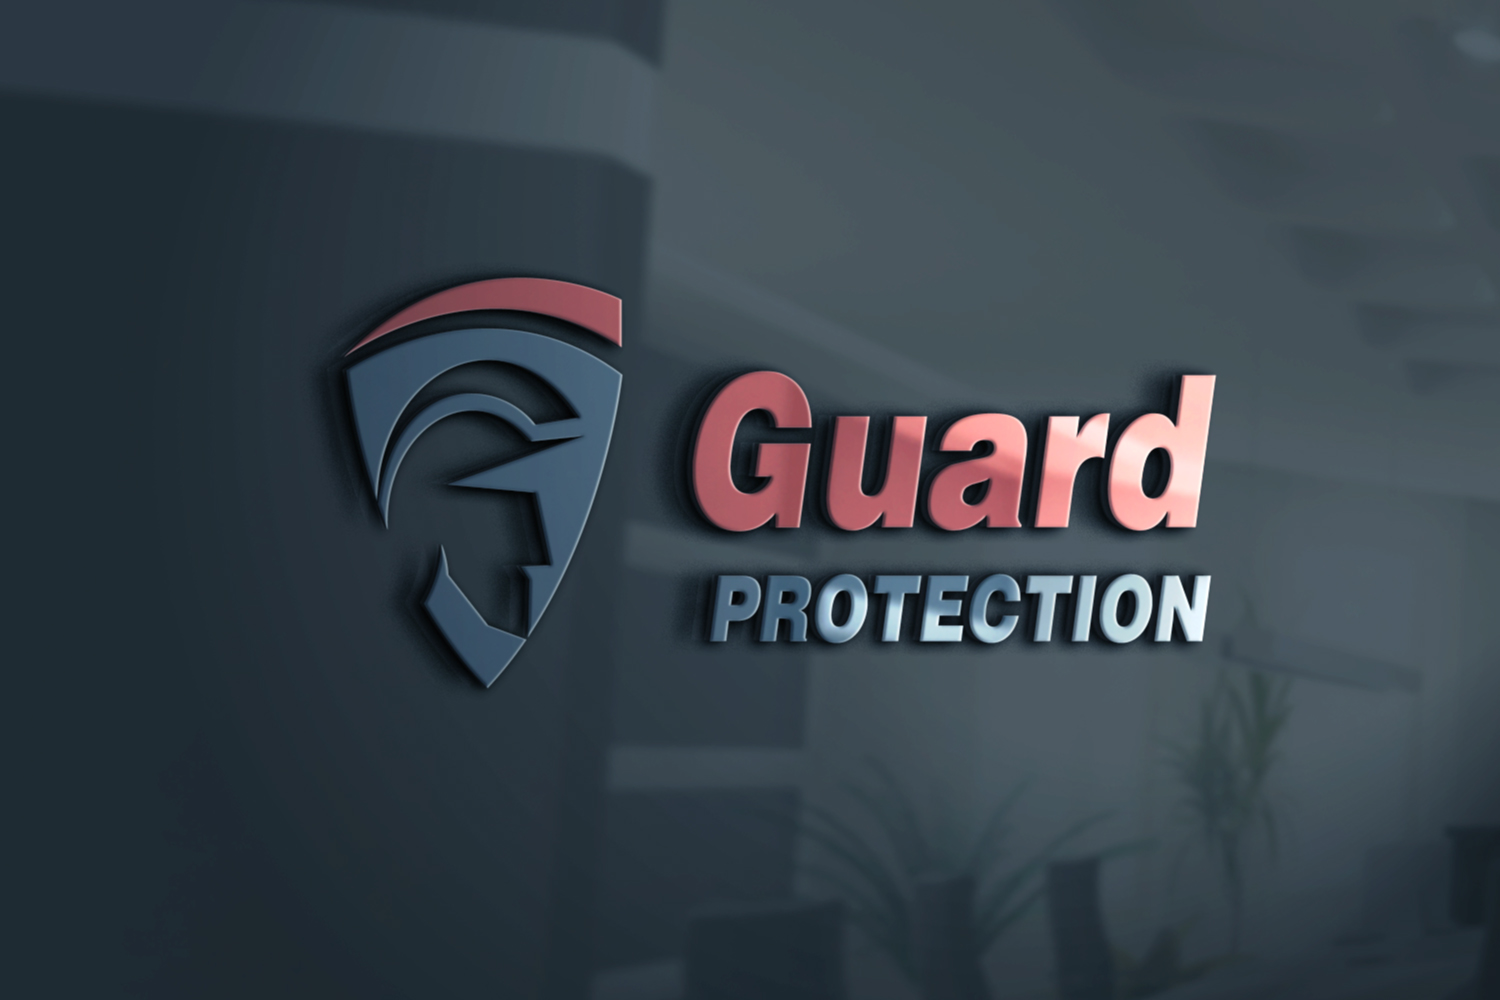 Police & Shield Logo, Guard Protection. example image 2